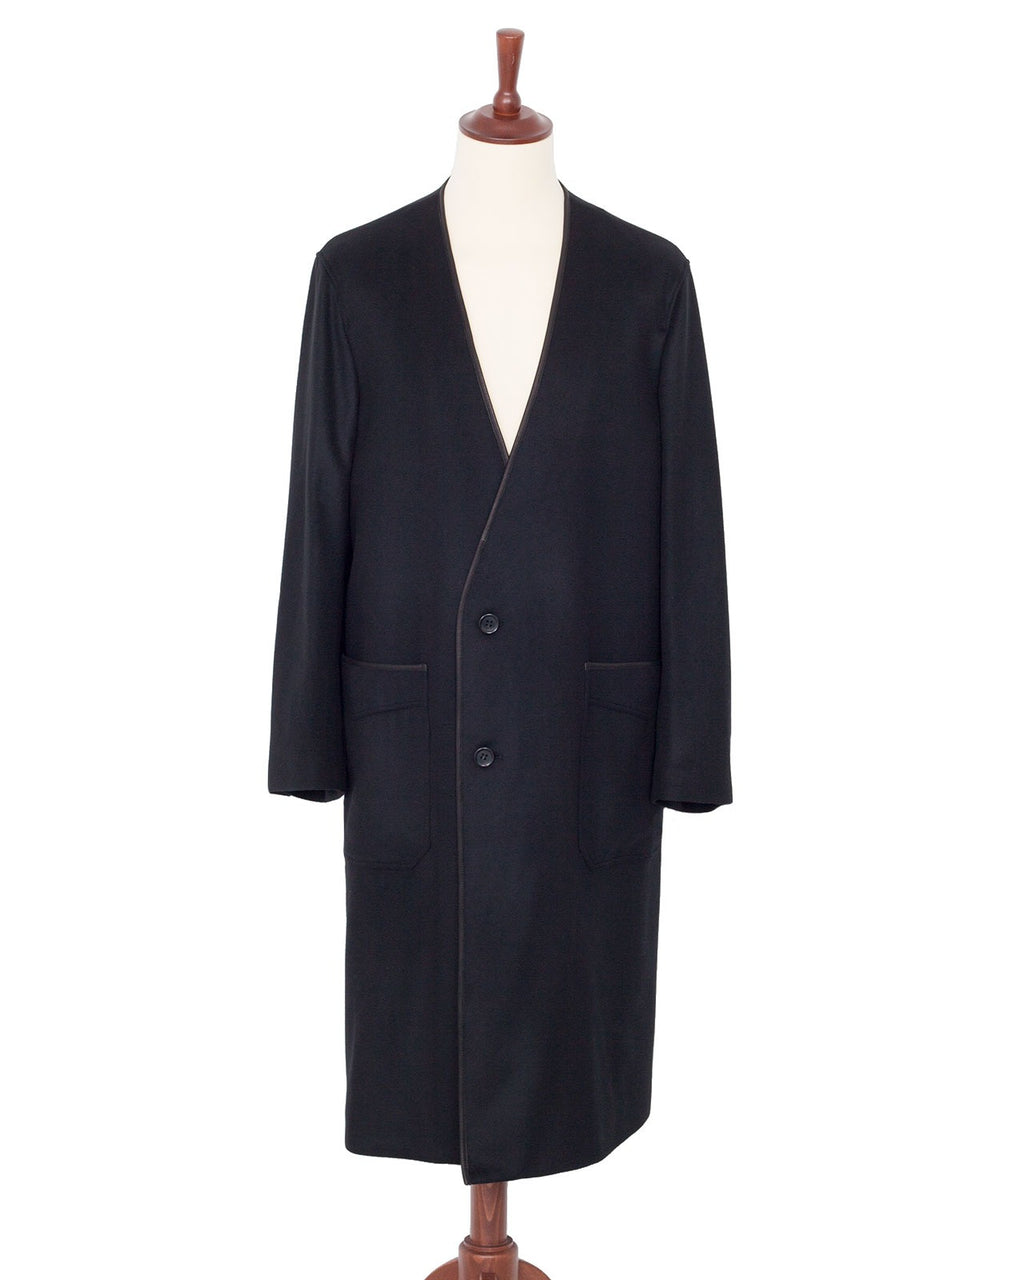 The Letters Collarless Piping Coat, Wool, Black